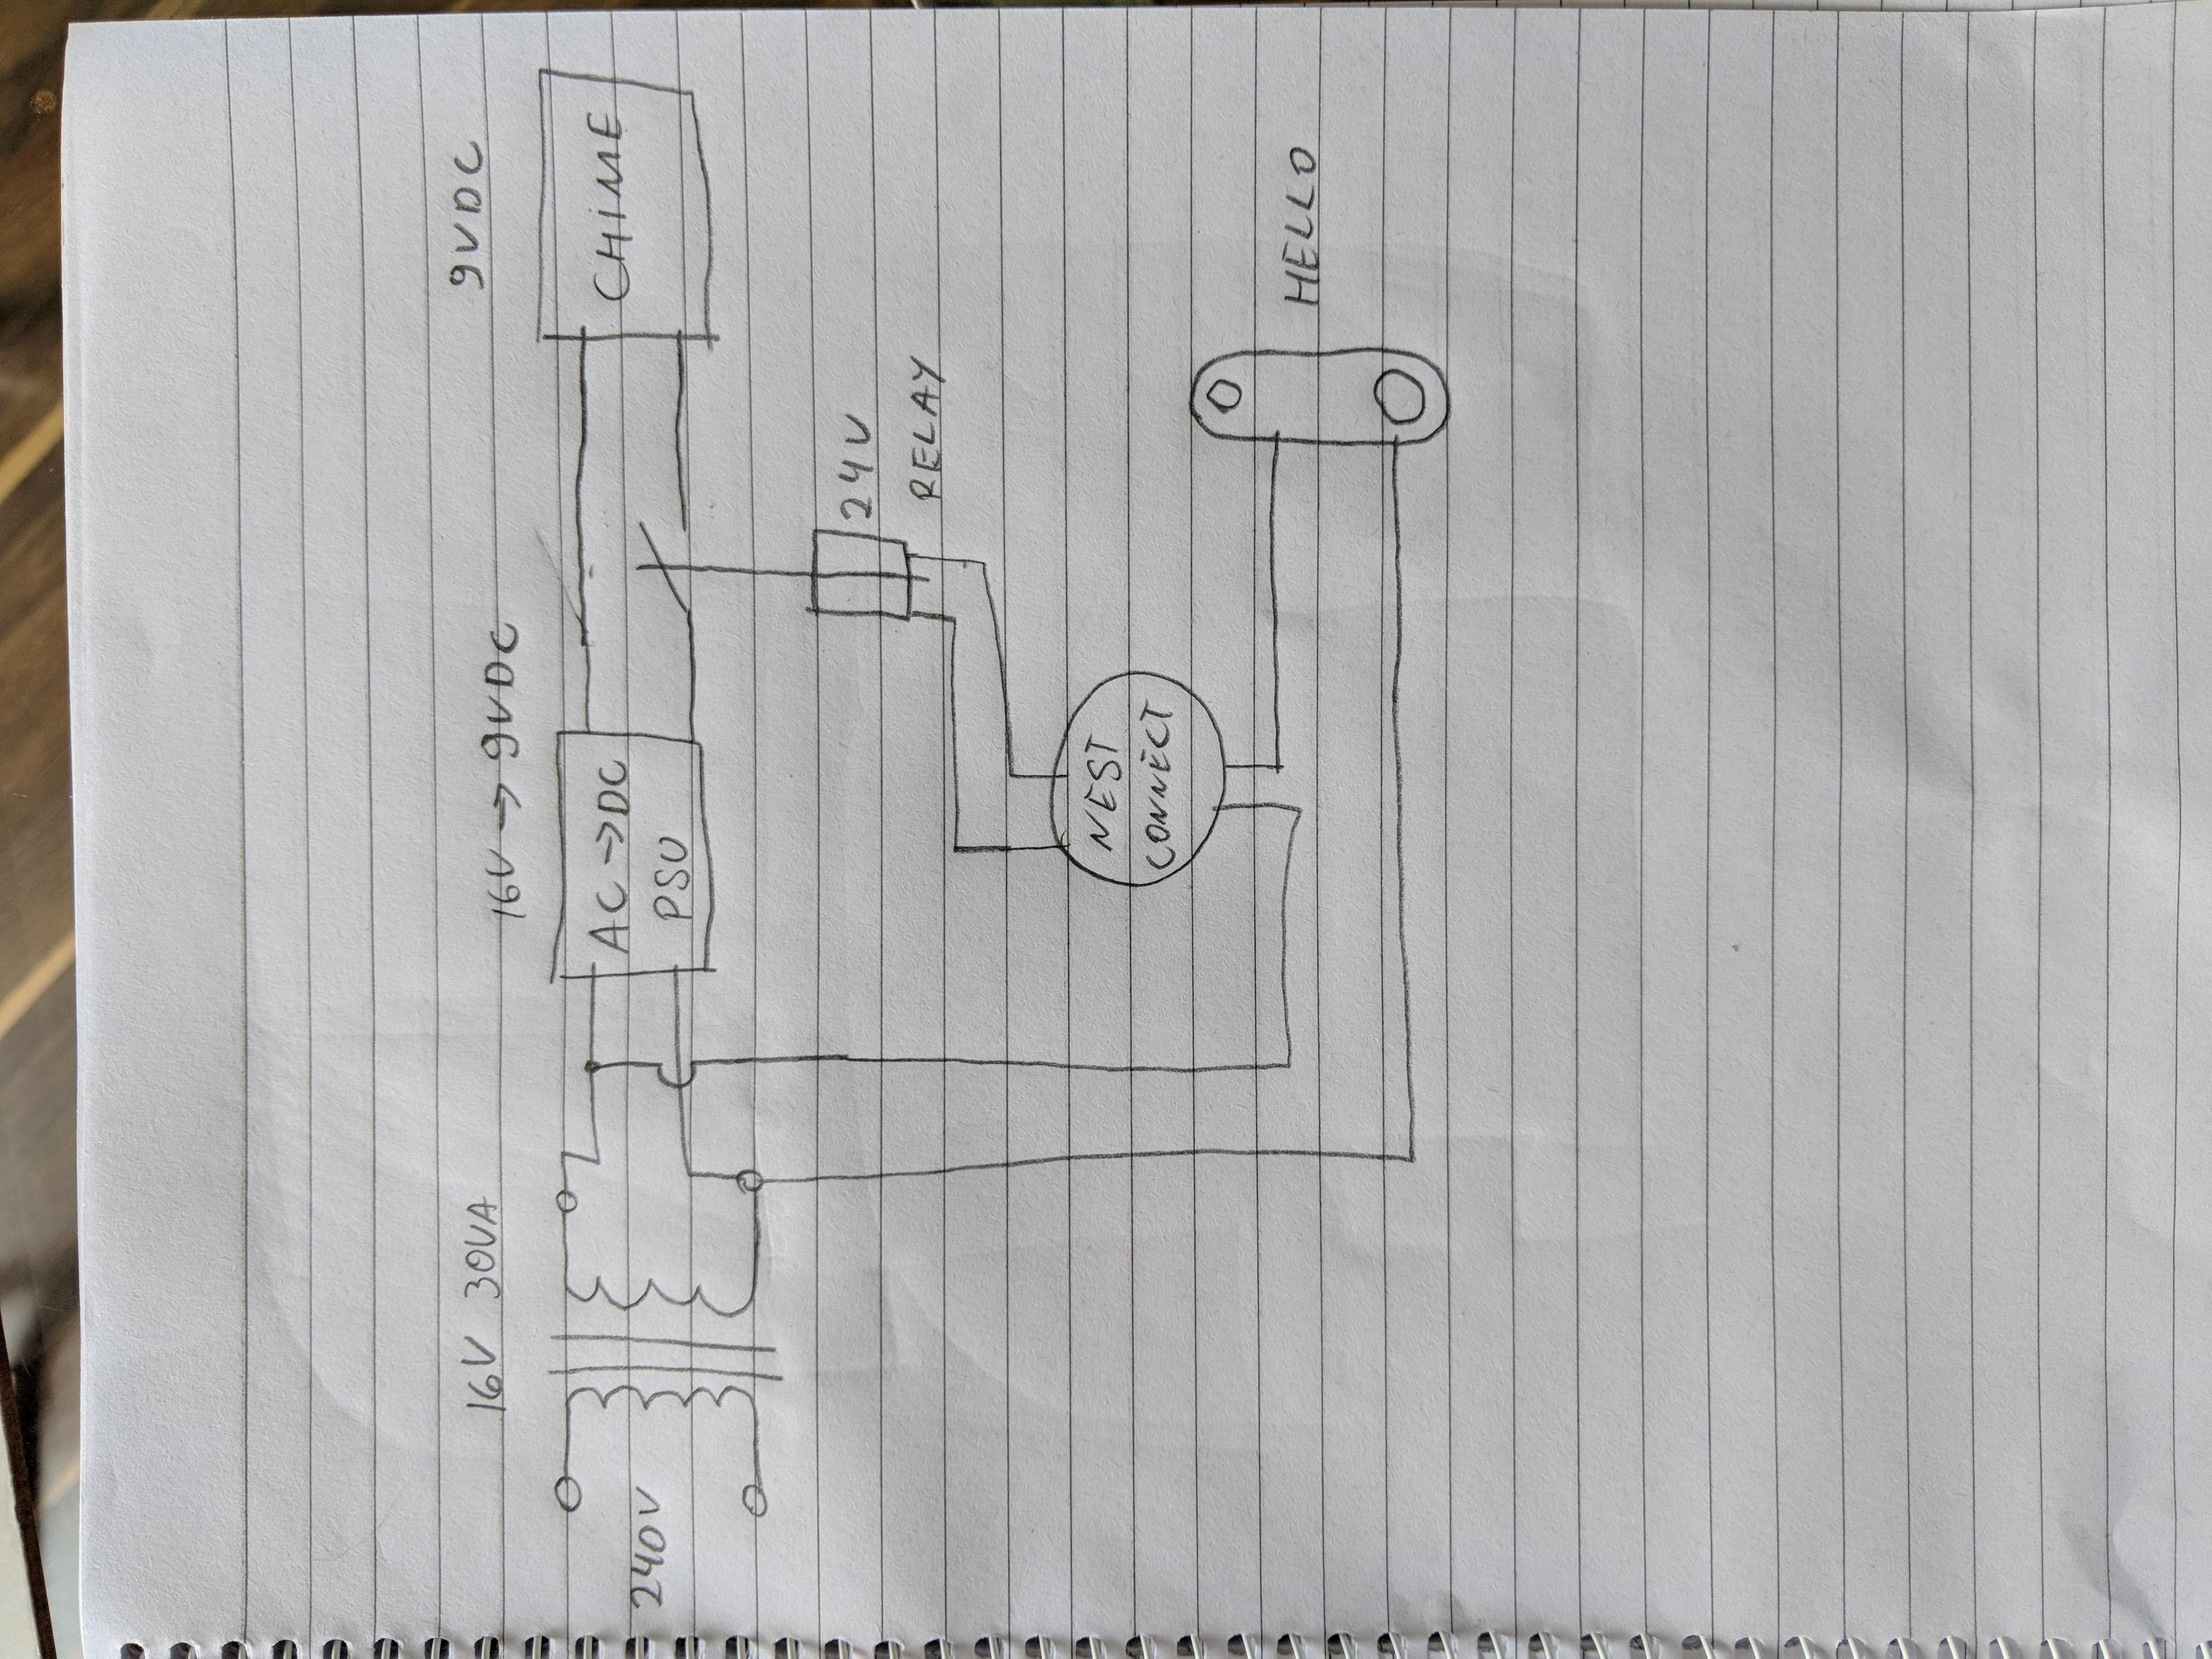 Nest Hello Wiring Diagram For Battery Operated Wired Doer Bell Uk : Nest - Nest 4 Wiring Diagram